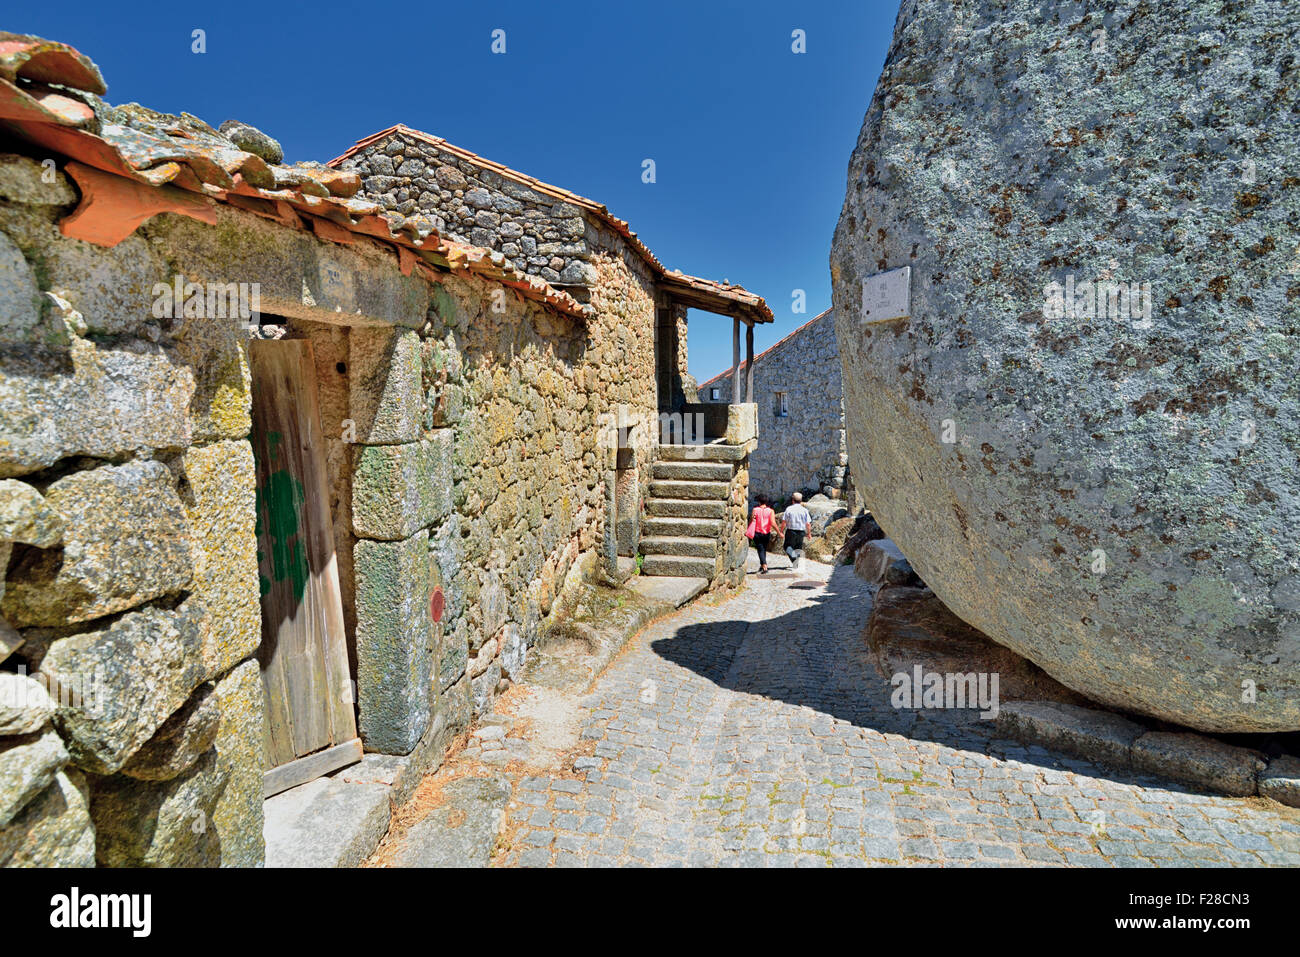 Portugal Tourists Walking In A Alley With Rustic Stone Houses And Huge Granite Rocks Monsanto